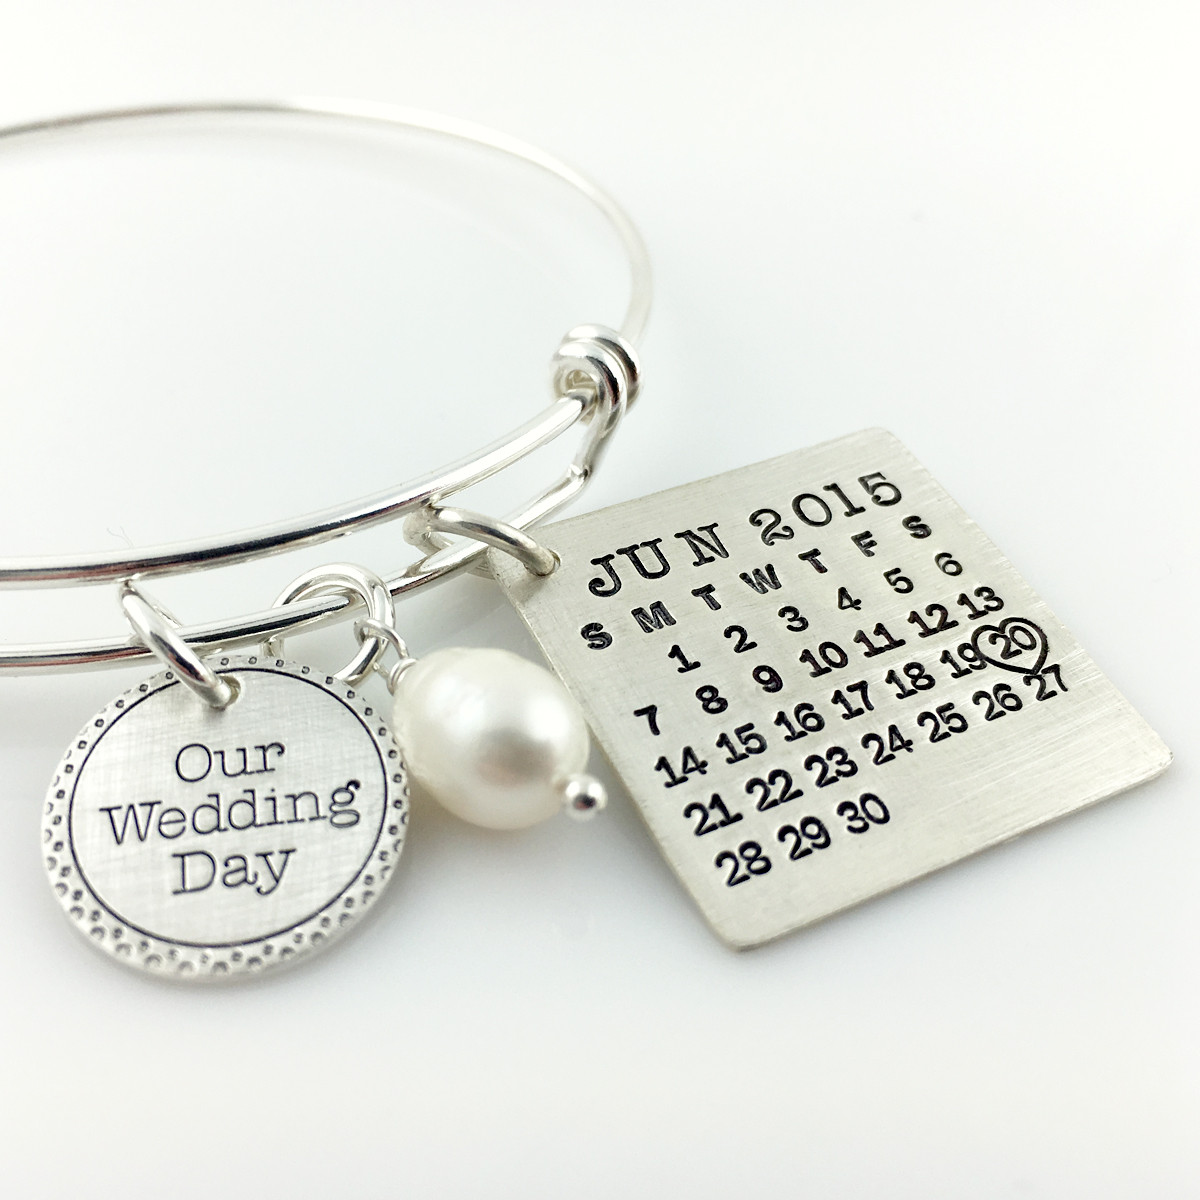 Mark Your Calendar Bangle Bracelet with Our Wedding Day Charm